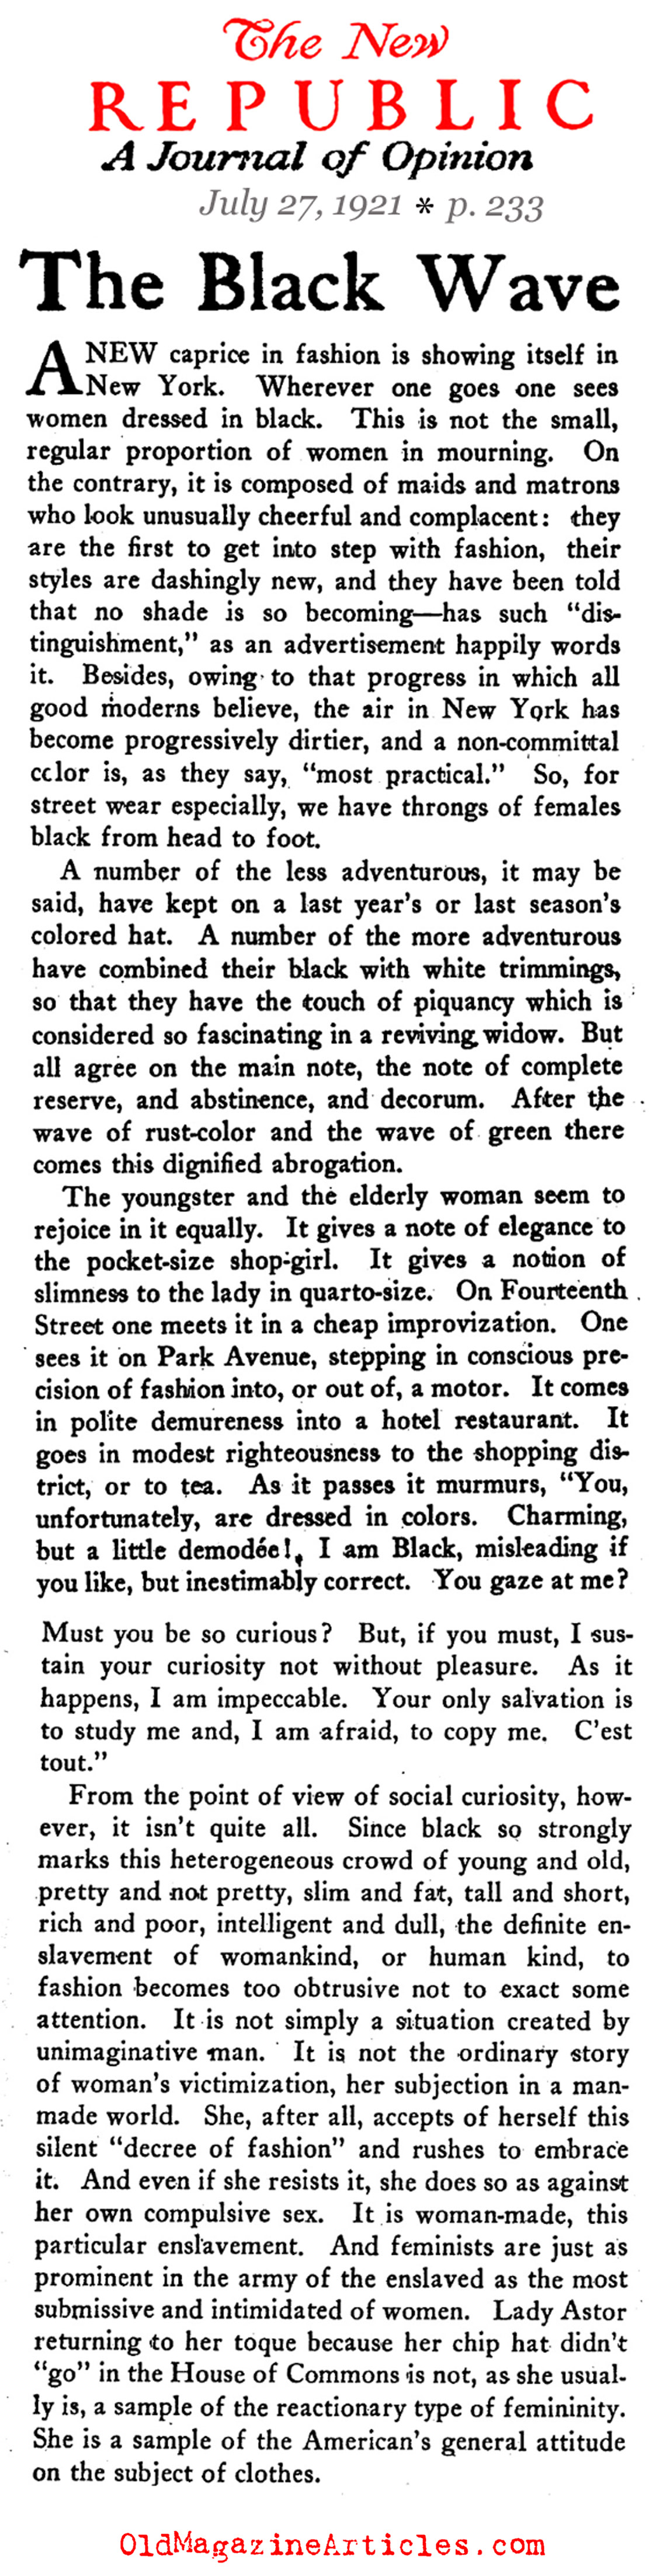 The Black Dress Arrives (The New Republic, 1921)